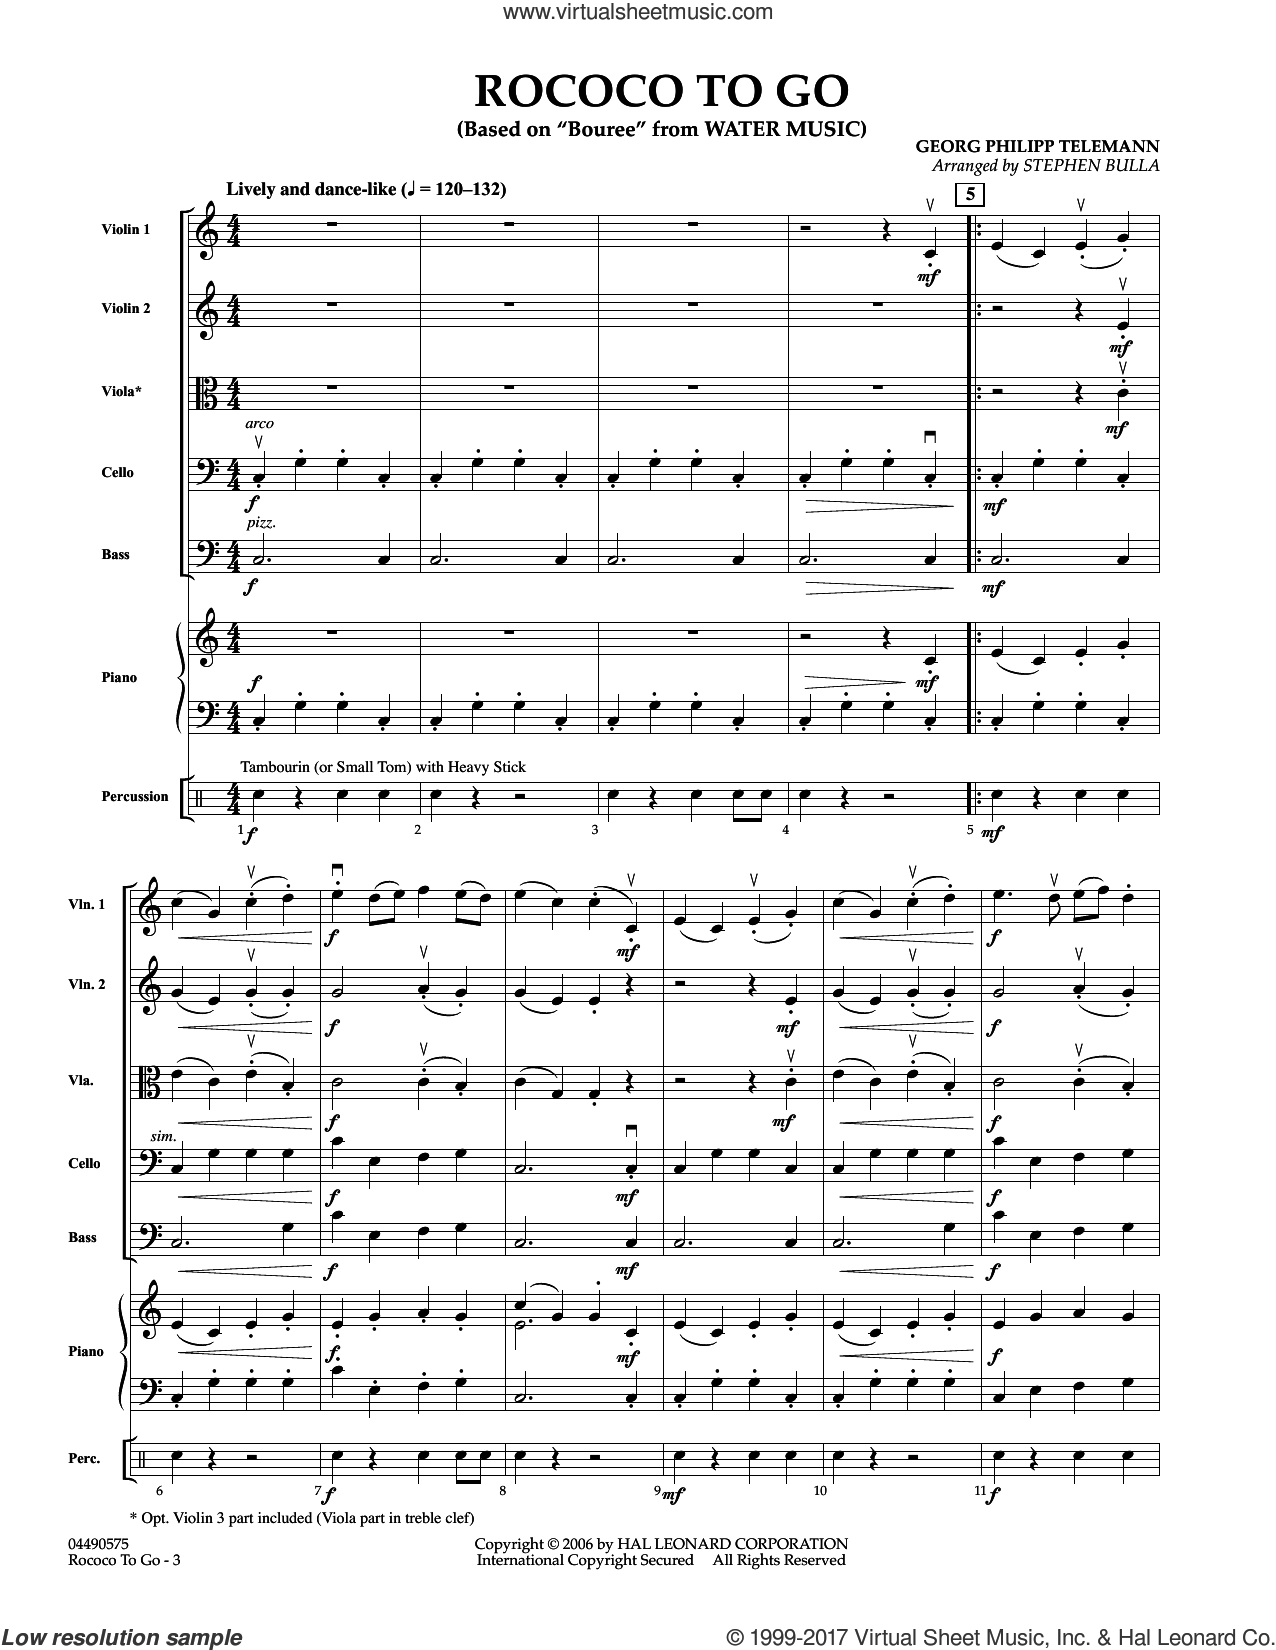 Rococo to Go (COMPLETE) sheet music for orchestra by Stephen Bulla and Georg Philipp Telemann, intermediate skill level